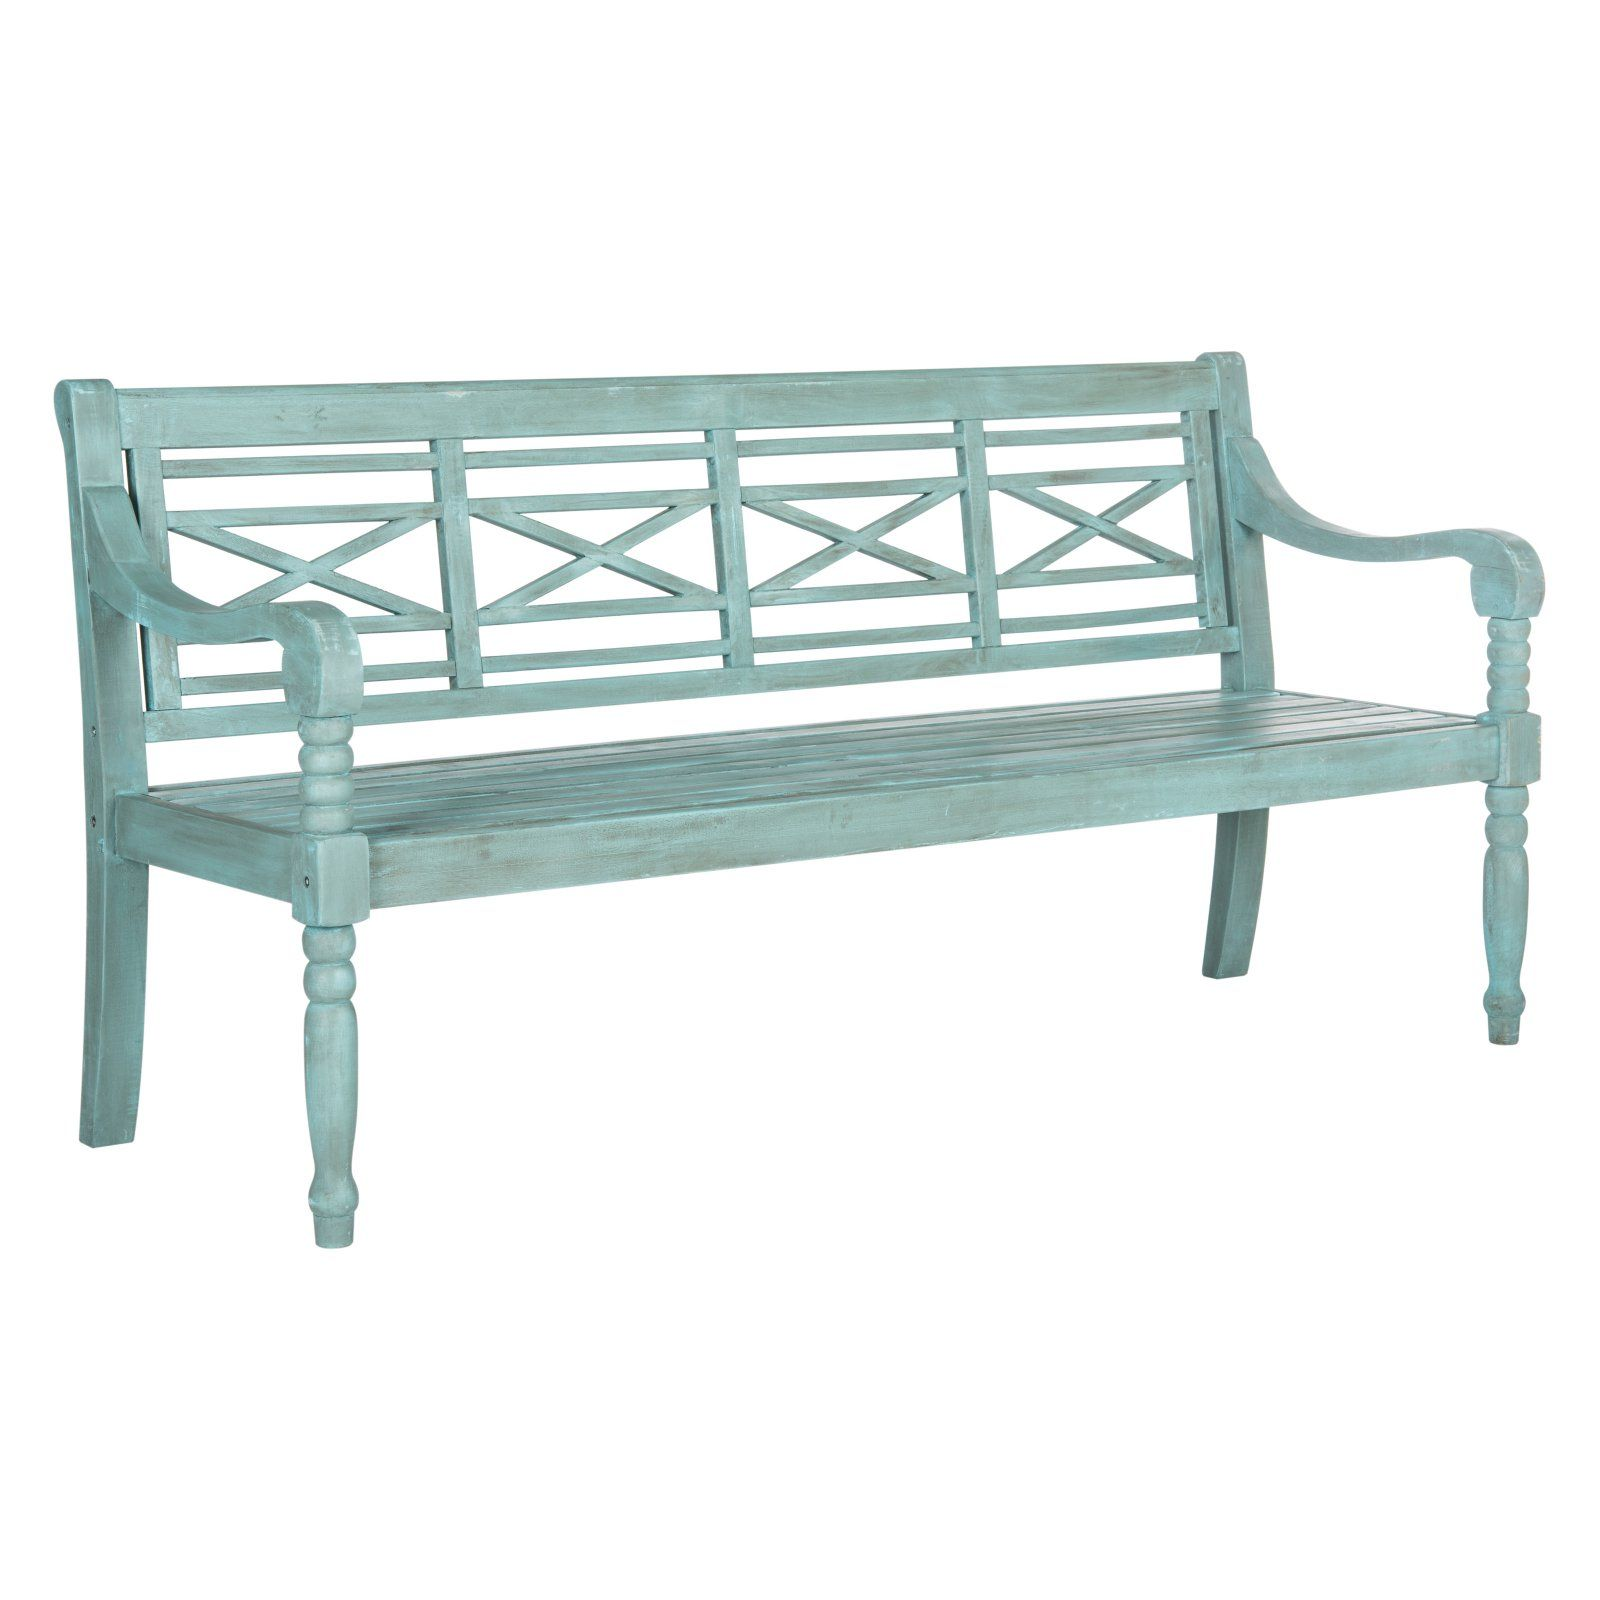 Surprising Safavieh Karoo 70 In Acacia Wood Cool Blue Outdoor Bench In Onthecornerstone Fun Painted Chair Ideas Images Onthecornerstoneorg